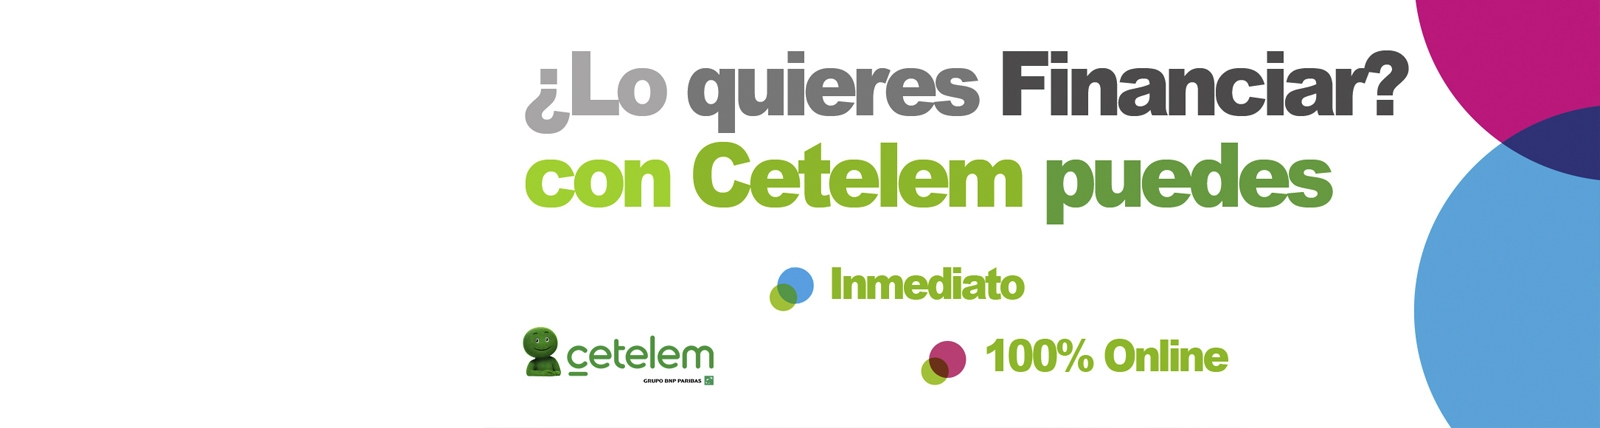 Banner Financiación Cetelem